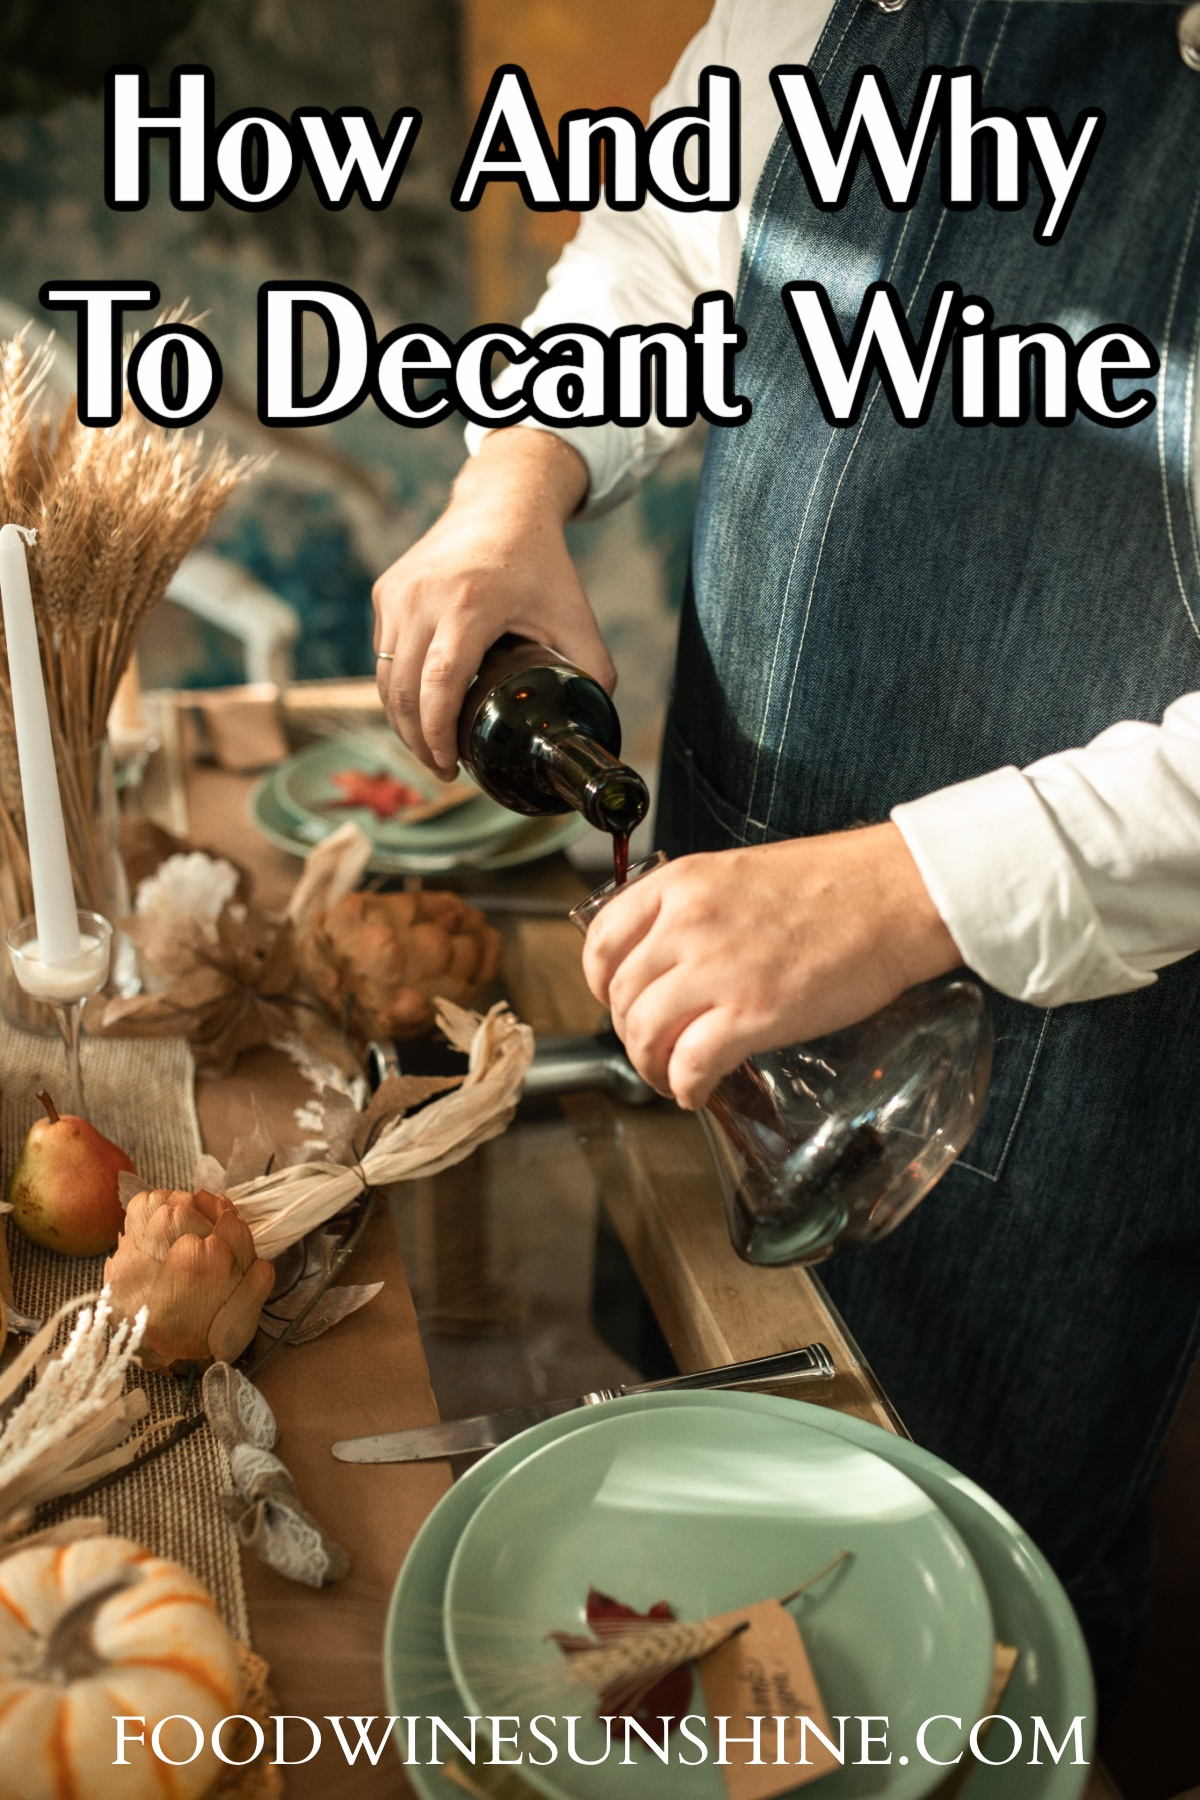 How and Why To Decant Wine